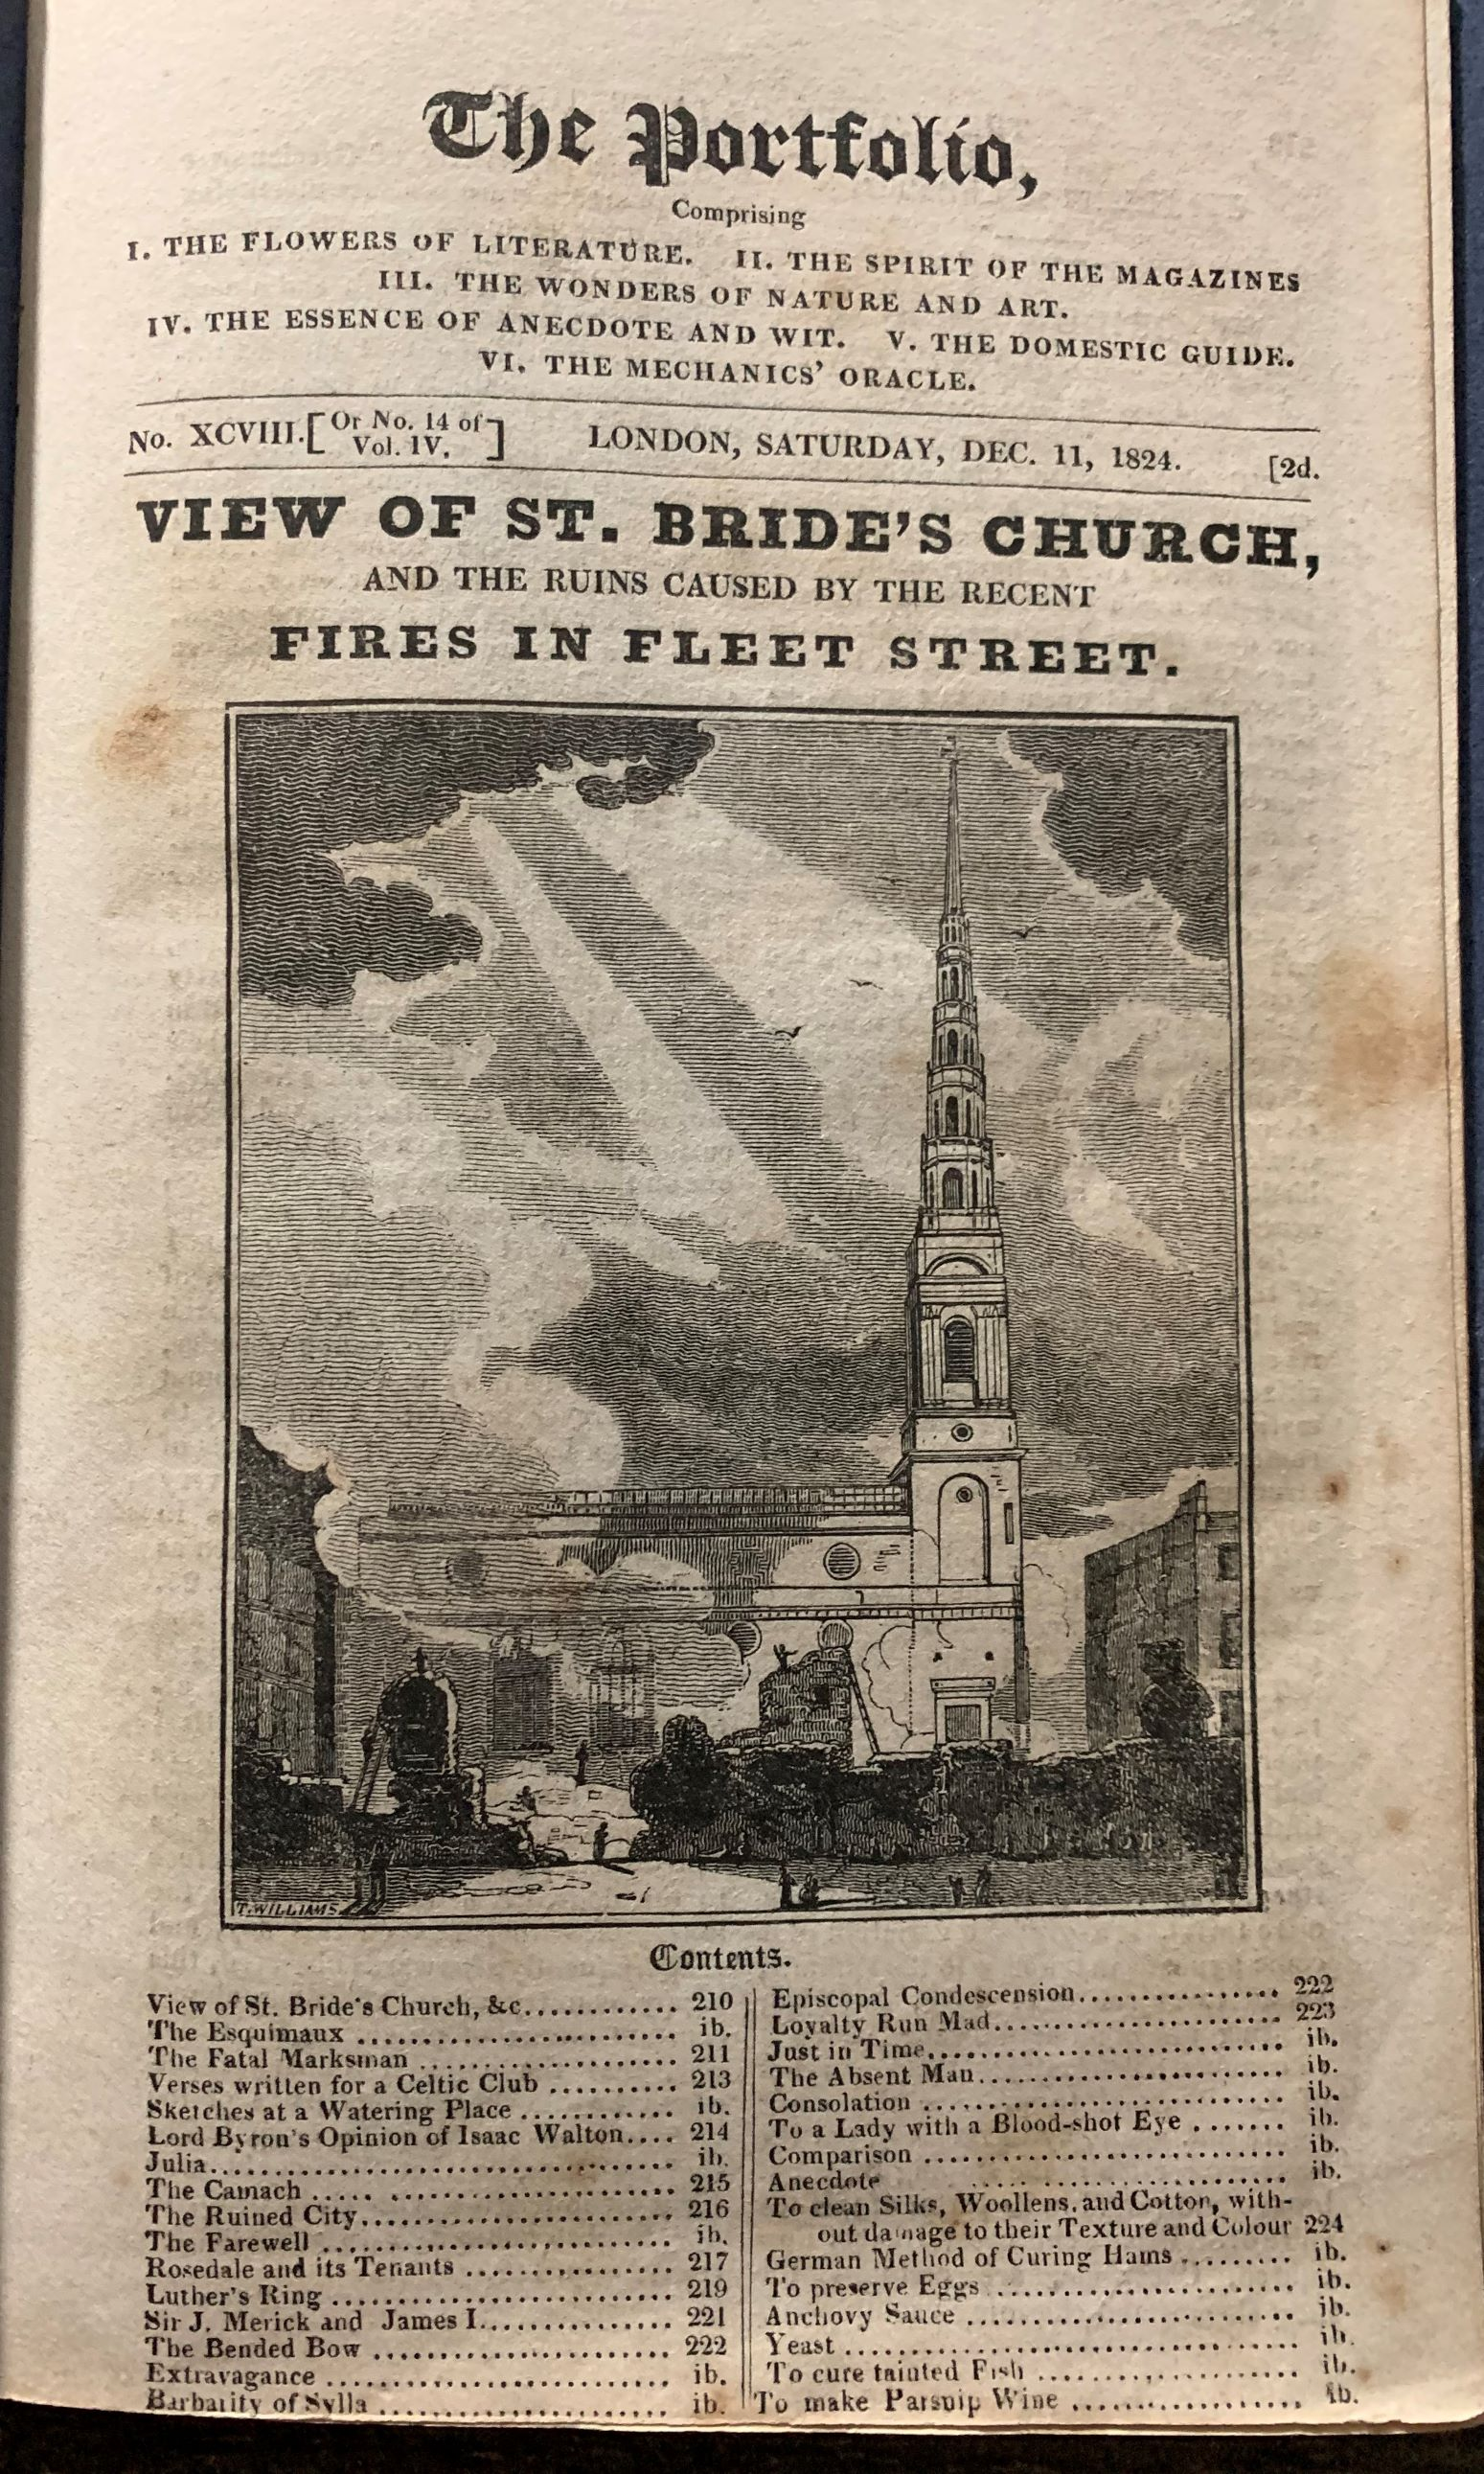 Image for The Portfolio. View of St. Bride's Church, and the Ruins Caused by the Recent Fires in Fleet Street.  No. XCVIII [or No. 113 of Vol. IV]; Saturday, Dec. 11, 1824.